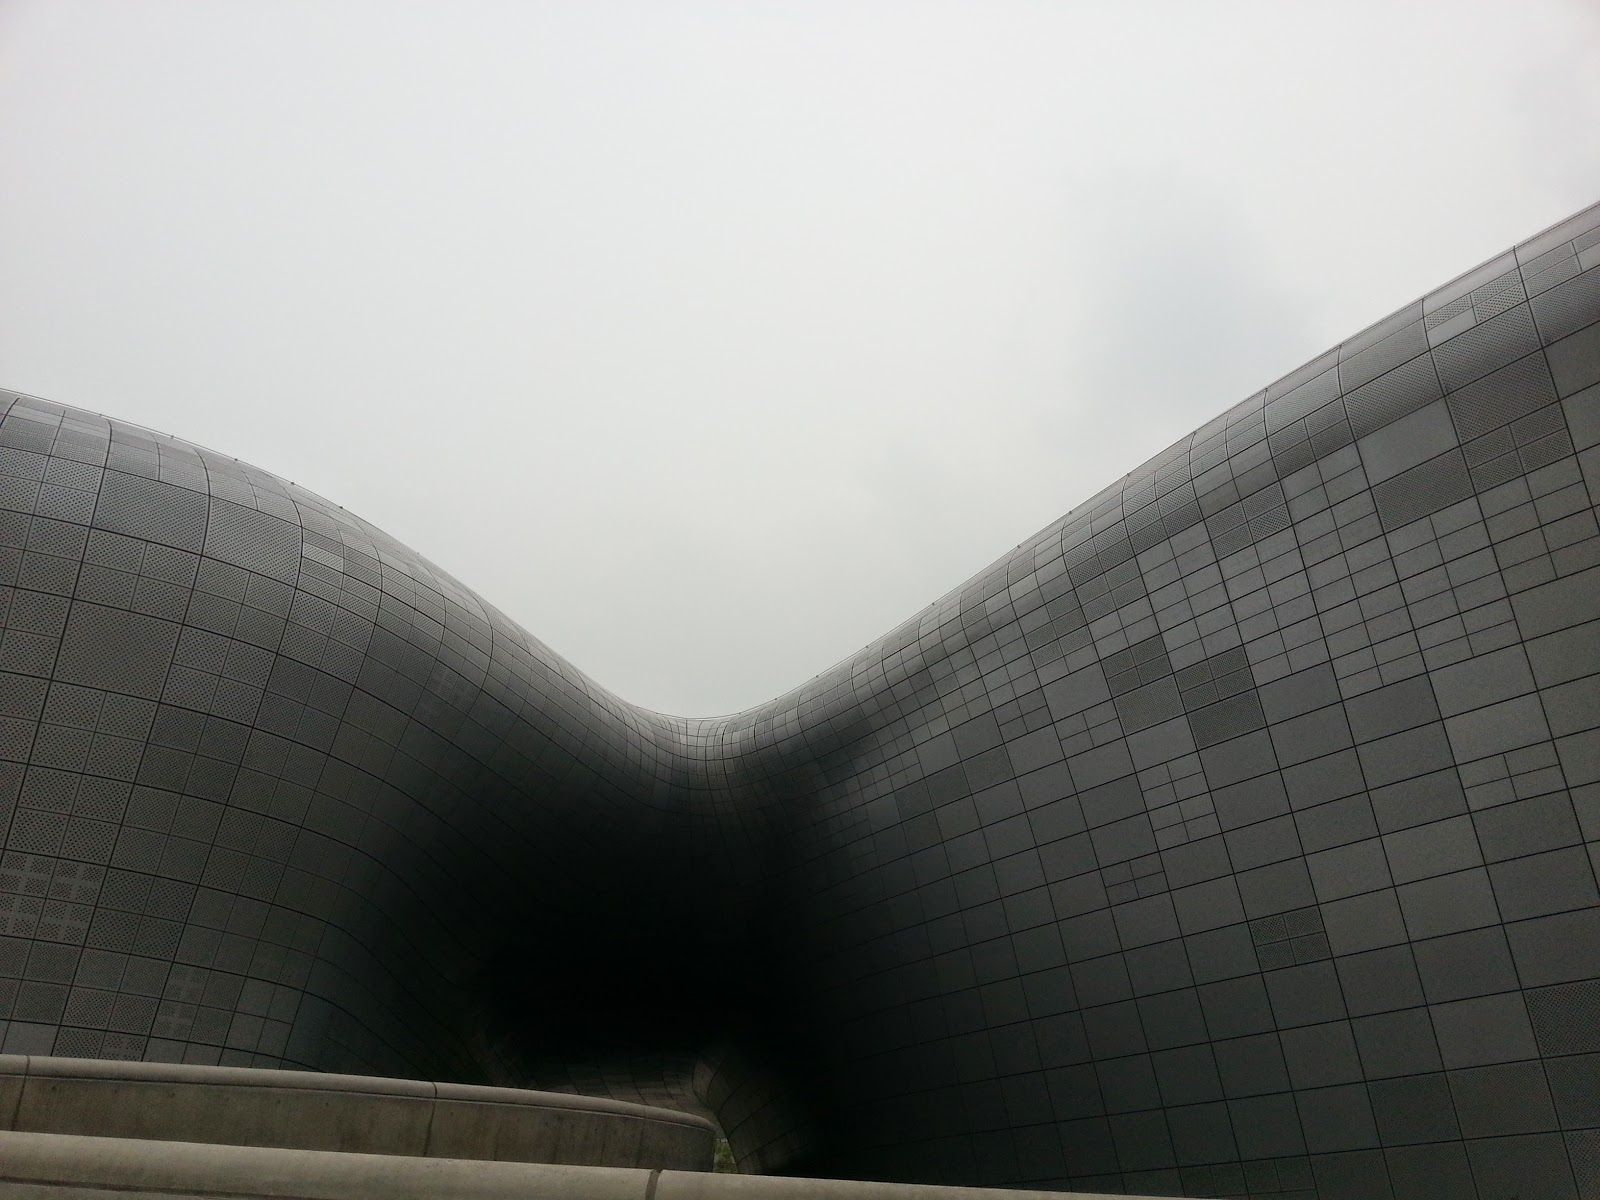 Curves of the Design plaza in Dongdaemun